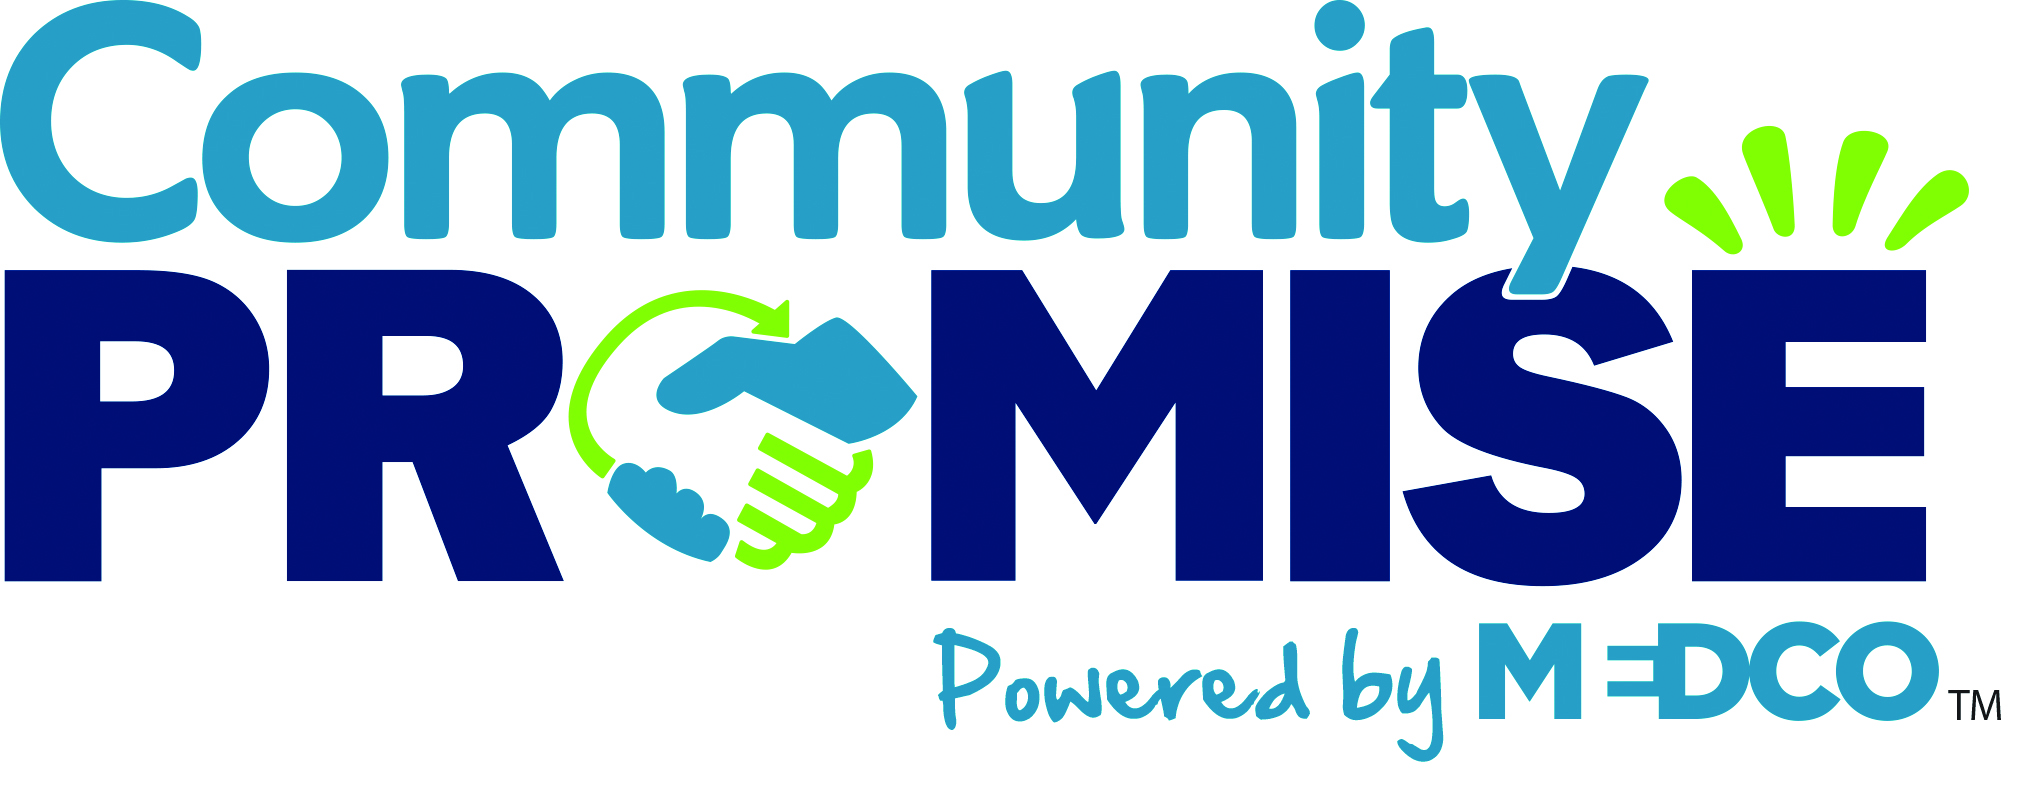 Community Promise by MEDCO